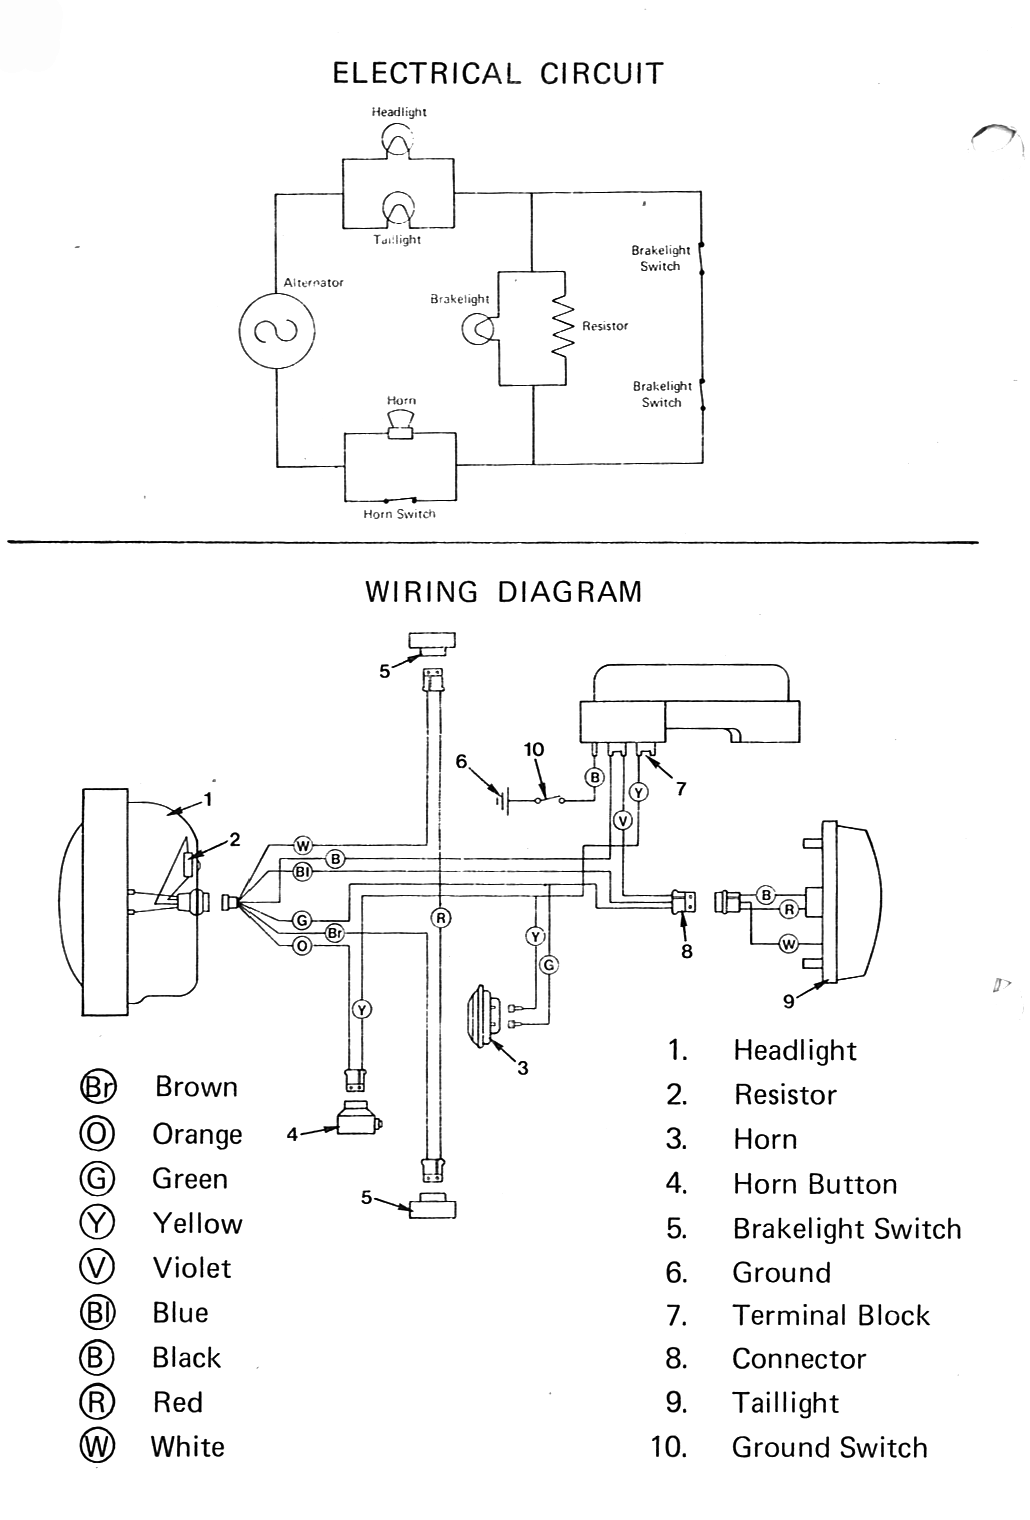 list of wiring diagrams - moped wiki